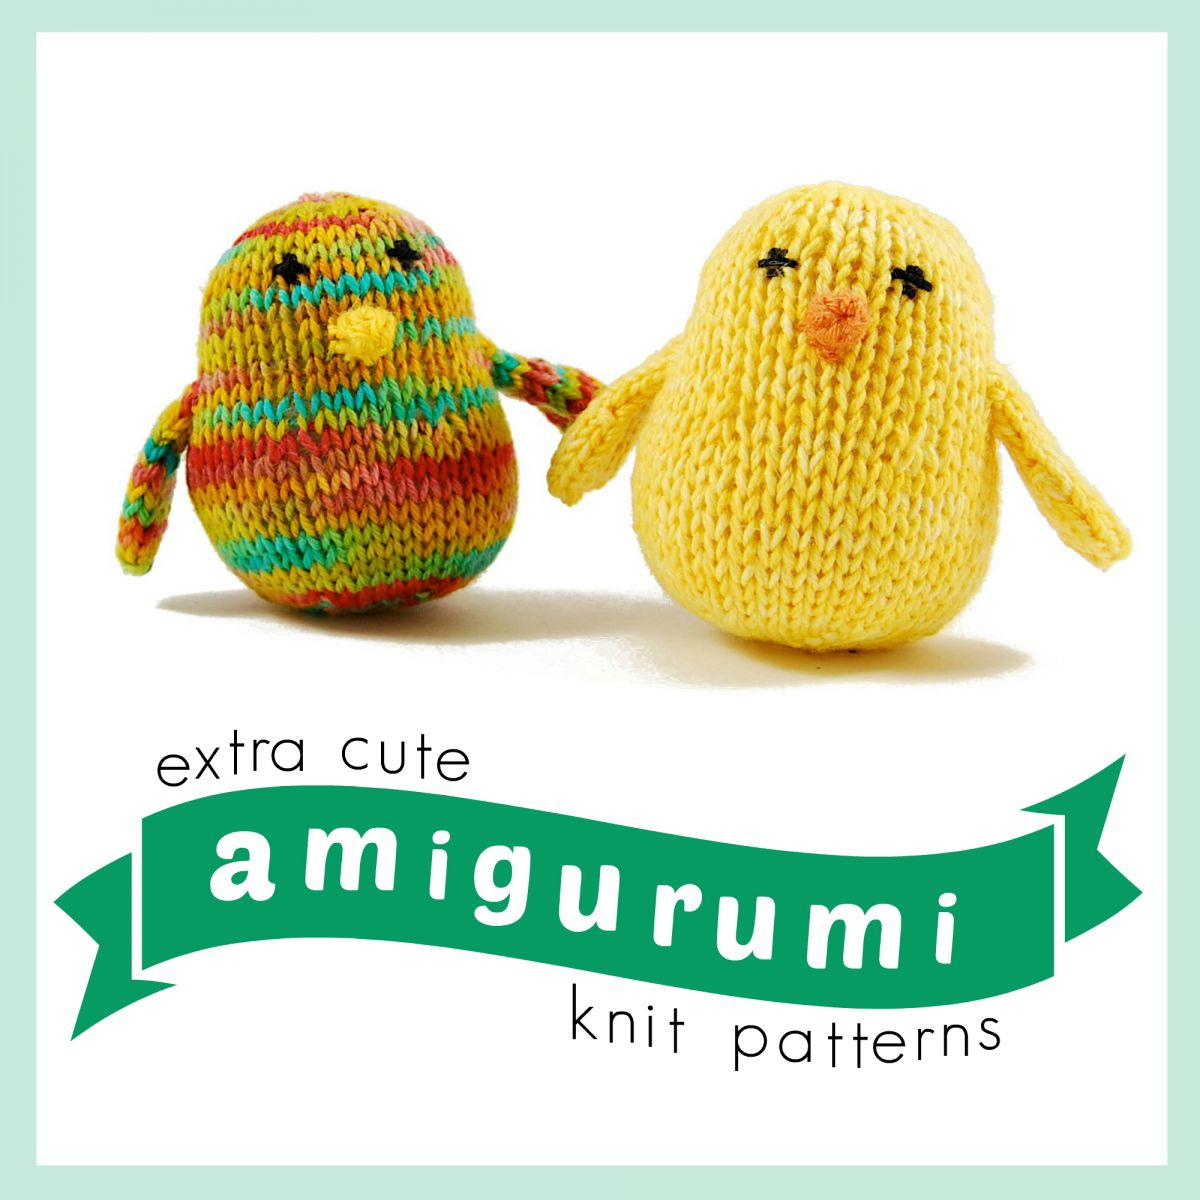 15 Extra Cute Amigurumi Knit Patterns AllFreeKnitting.com